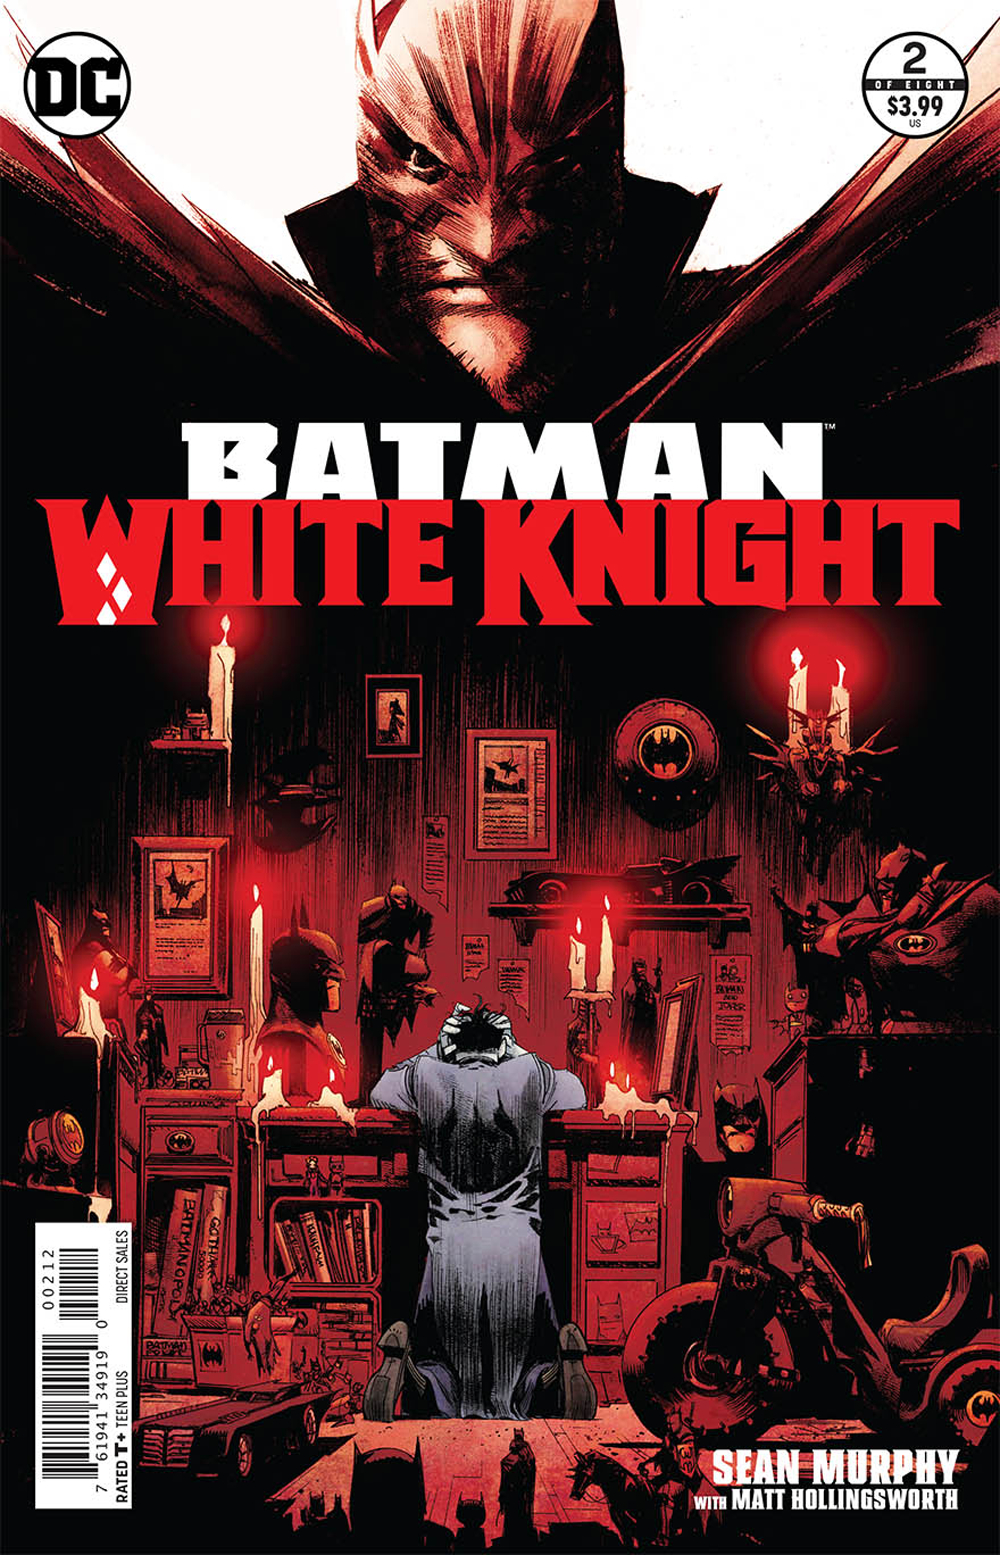 BATMAN WHITE KNIGHT #2 (OF 8) 2ND PTG